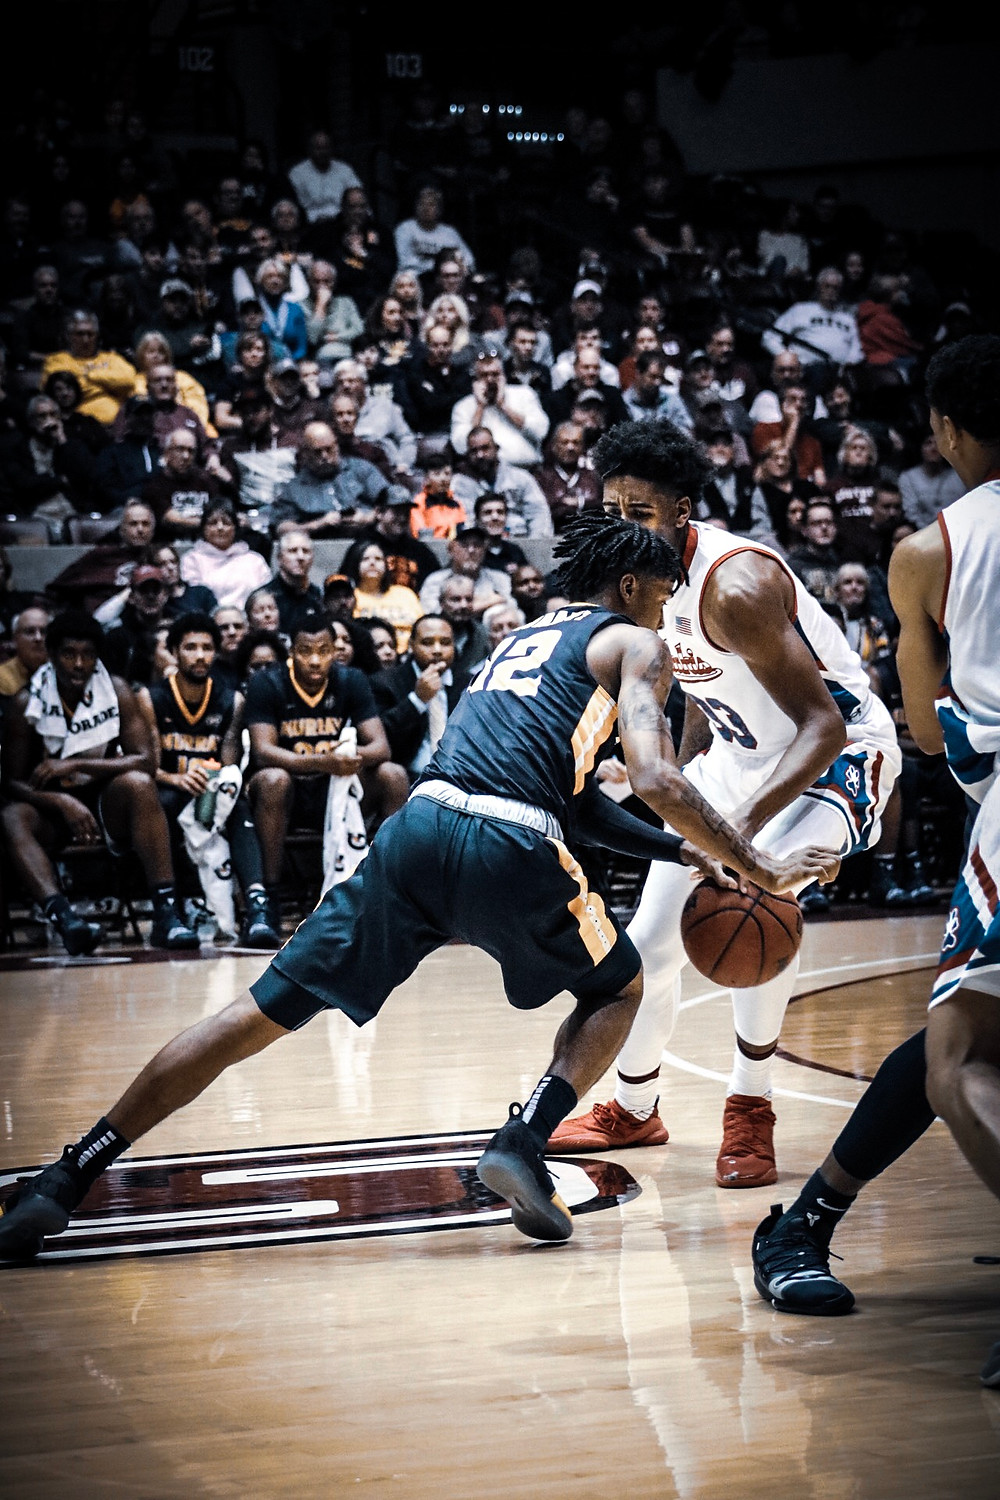 Basketball photography, sports photography, tips for sport photography, how to do sport photography, sport photography tips